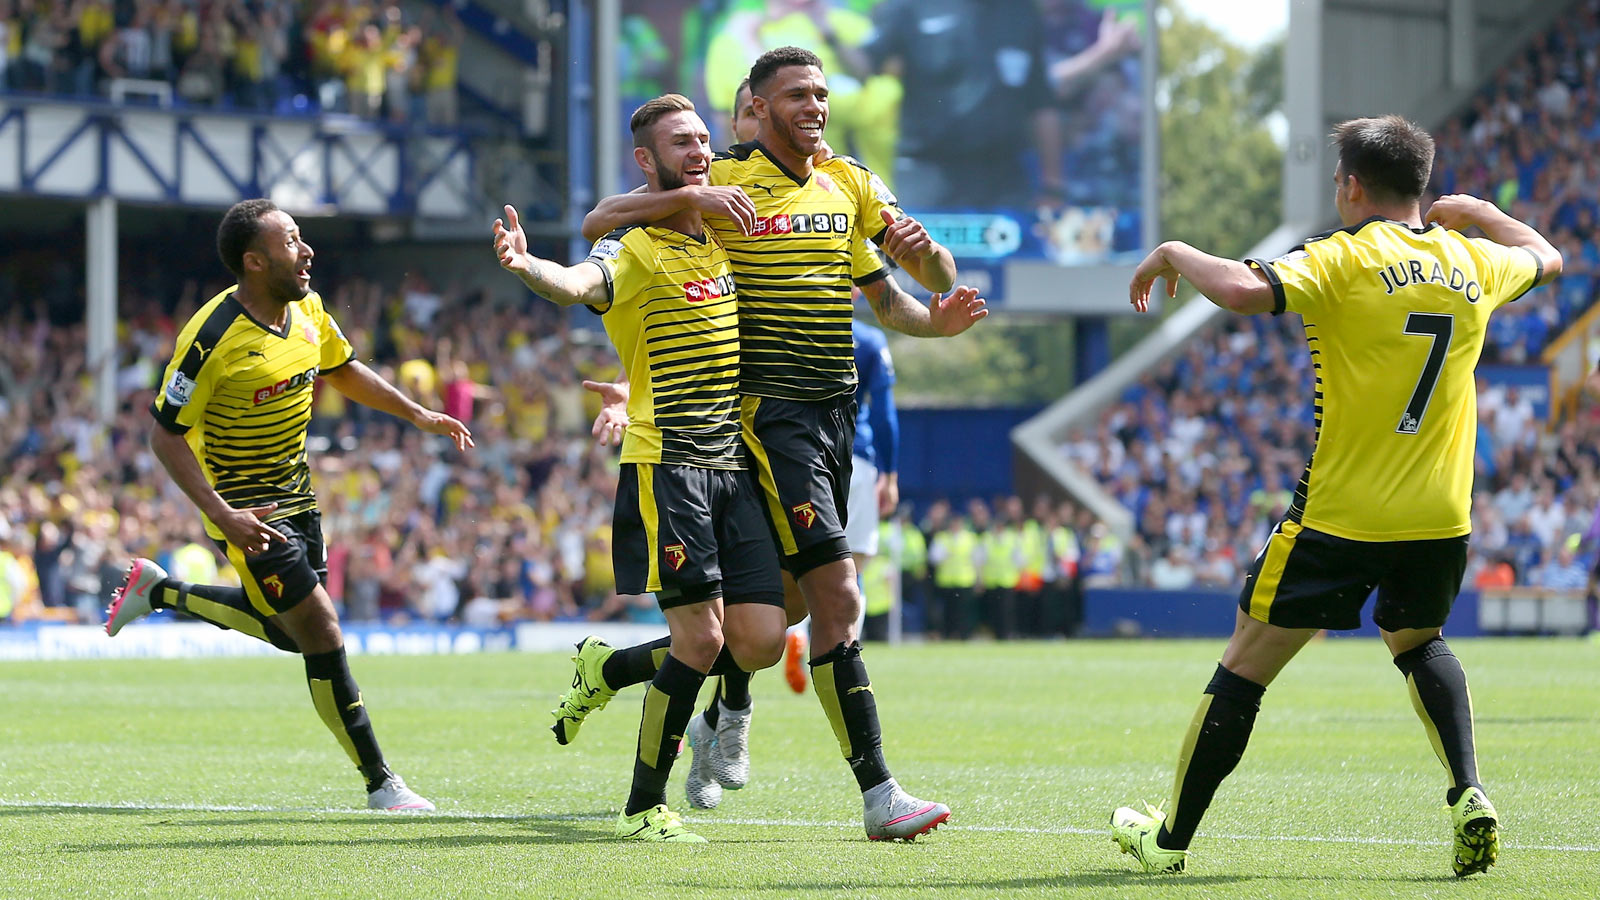 Premier League newcomers Watford earn draw at Everton